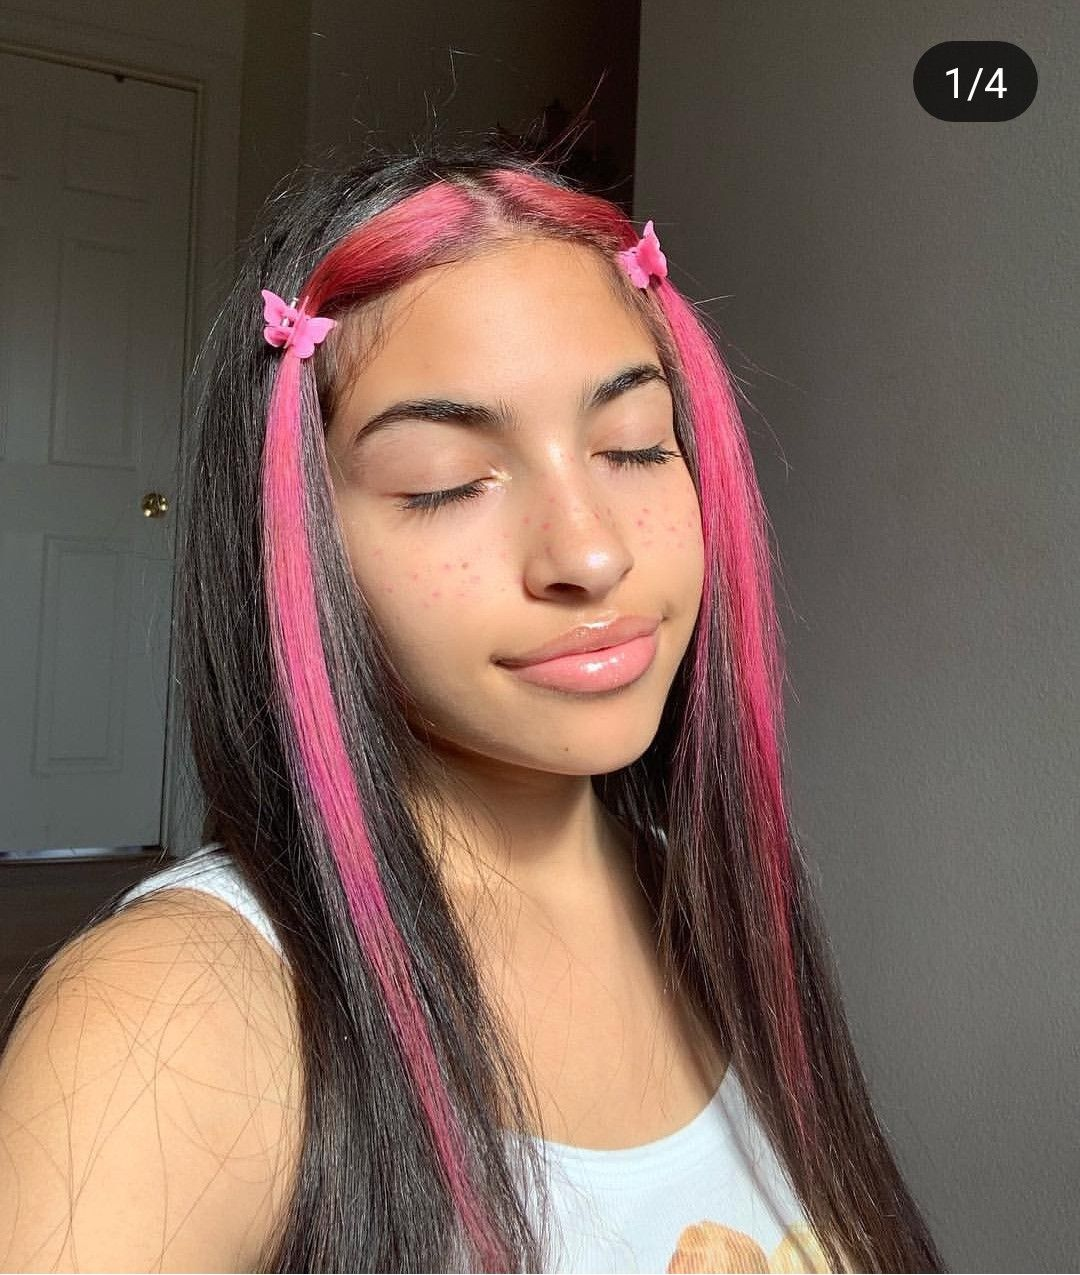 How To Dye Your Own Hair At Home Without Messing It Up Ecemella In 2020 Hair Color Streaks Hair Streaks Dyed Hair